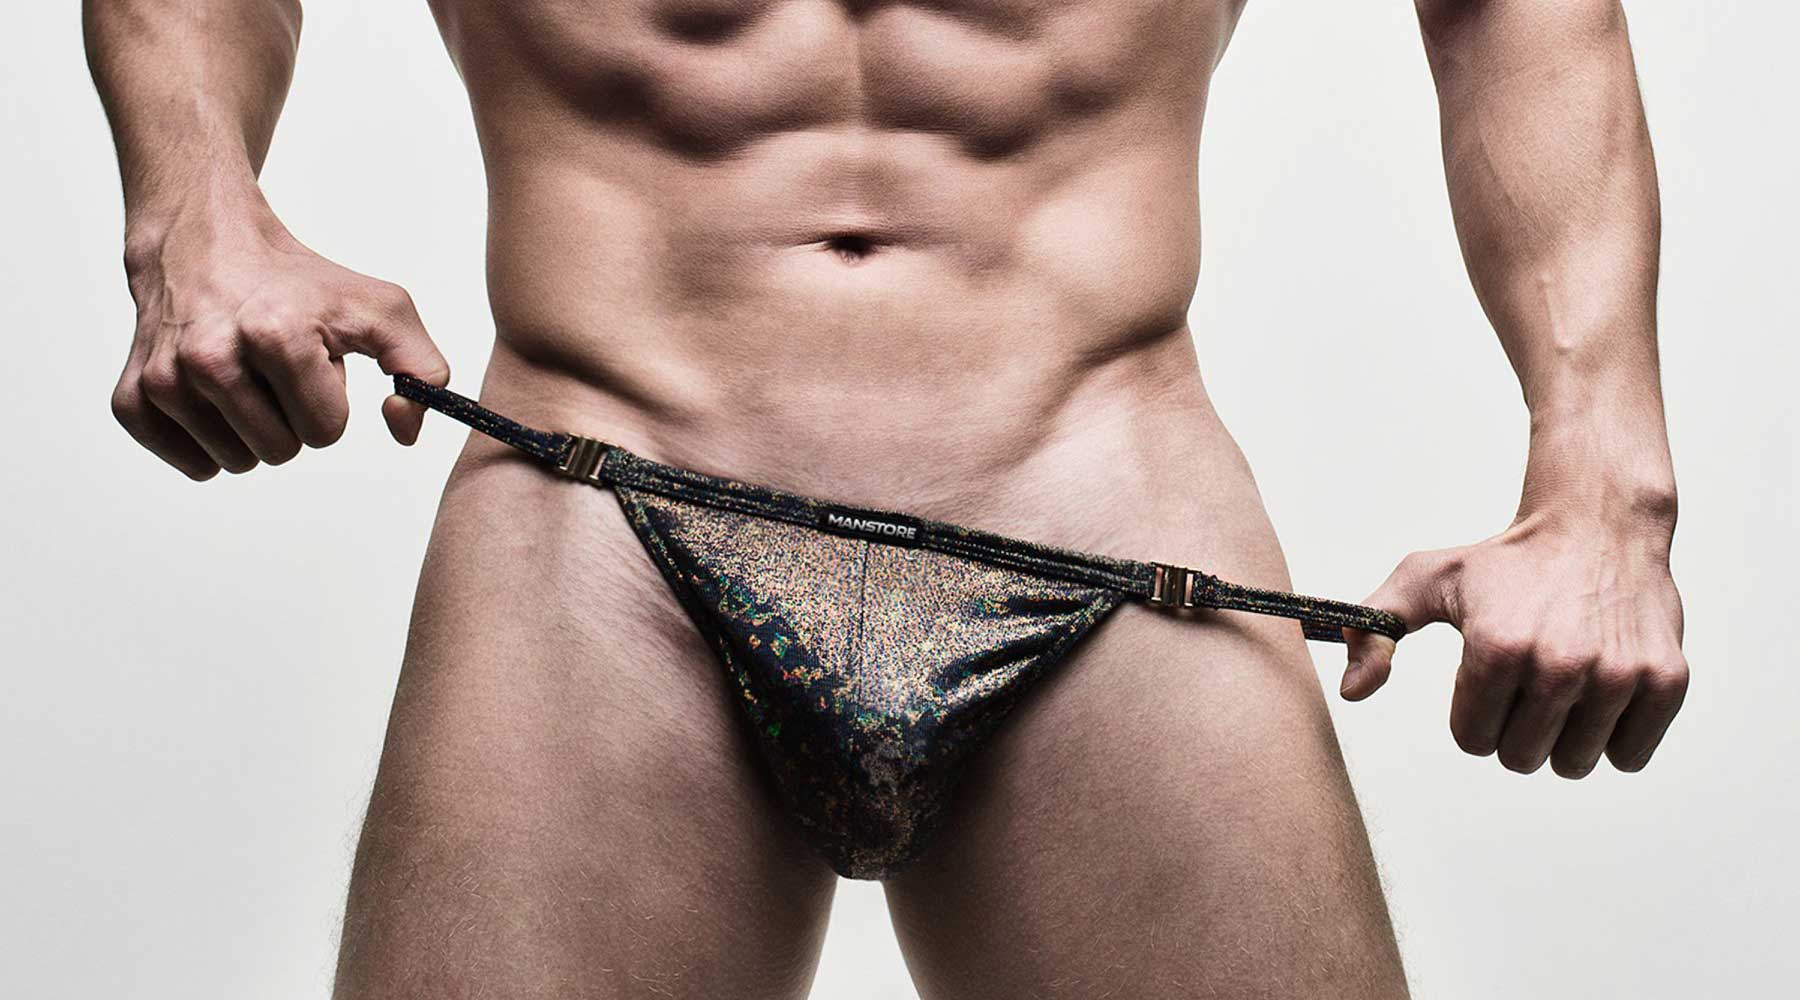 Men's Thongs